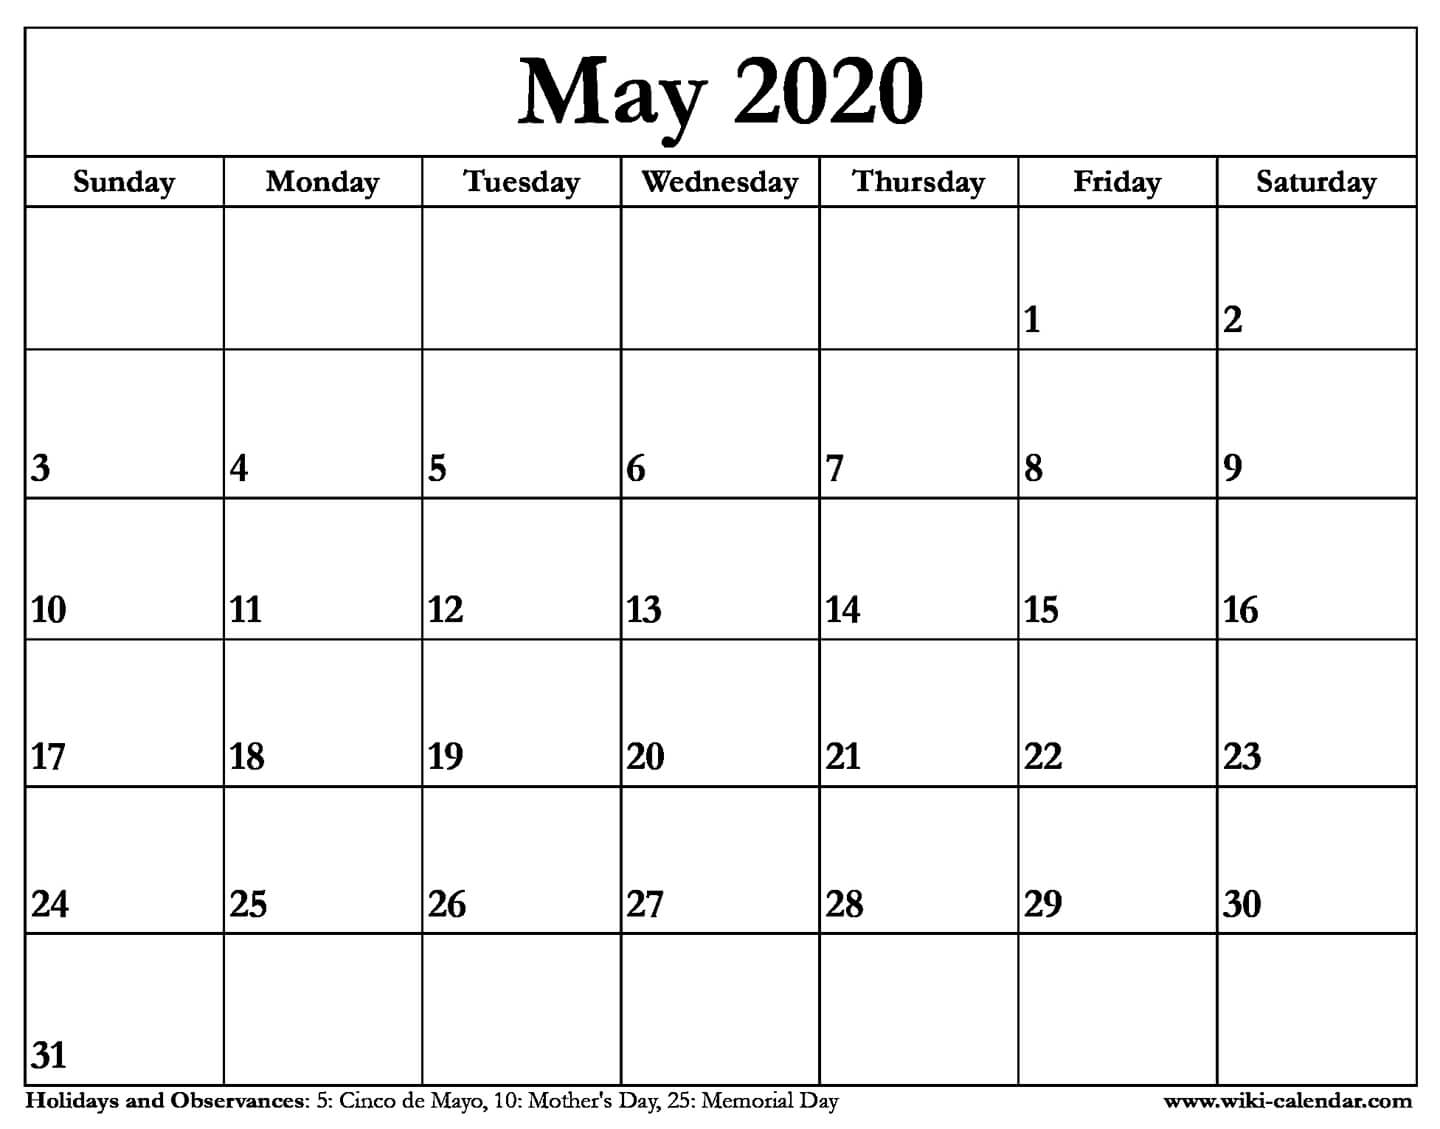 Wiki-Calendar – Download And Print Calendars For 2020